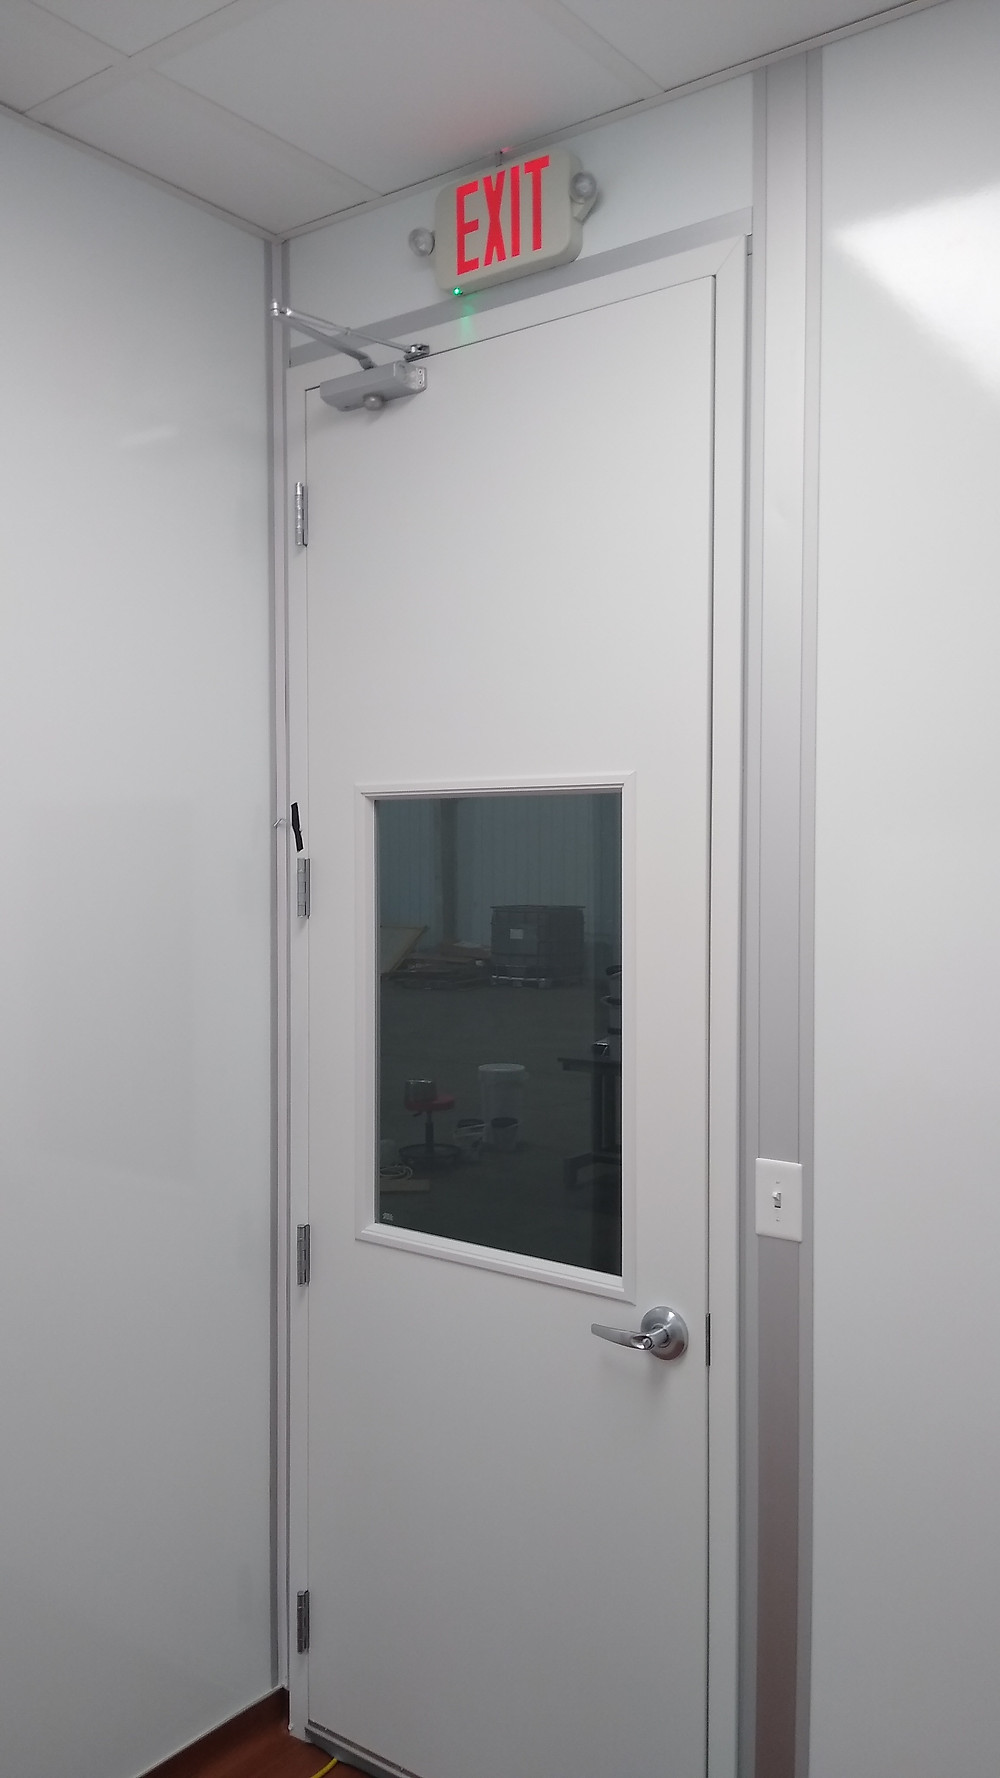 Applied Composites - Completed Projects - Exit Door Interior